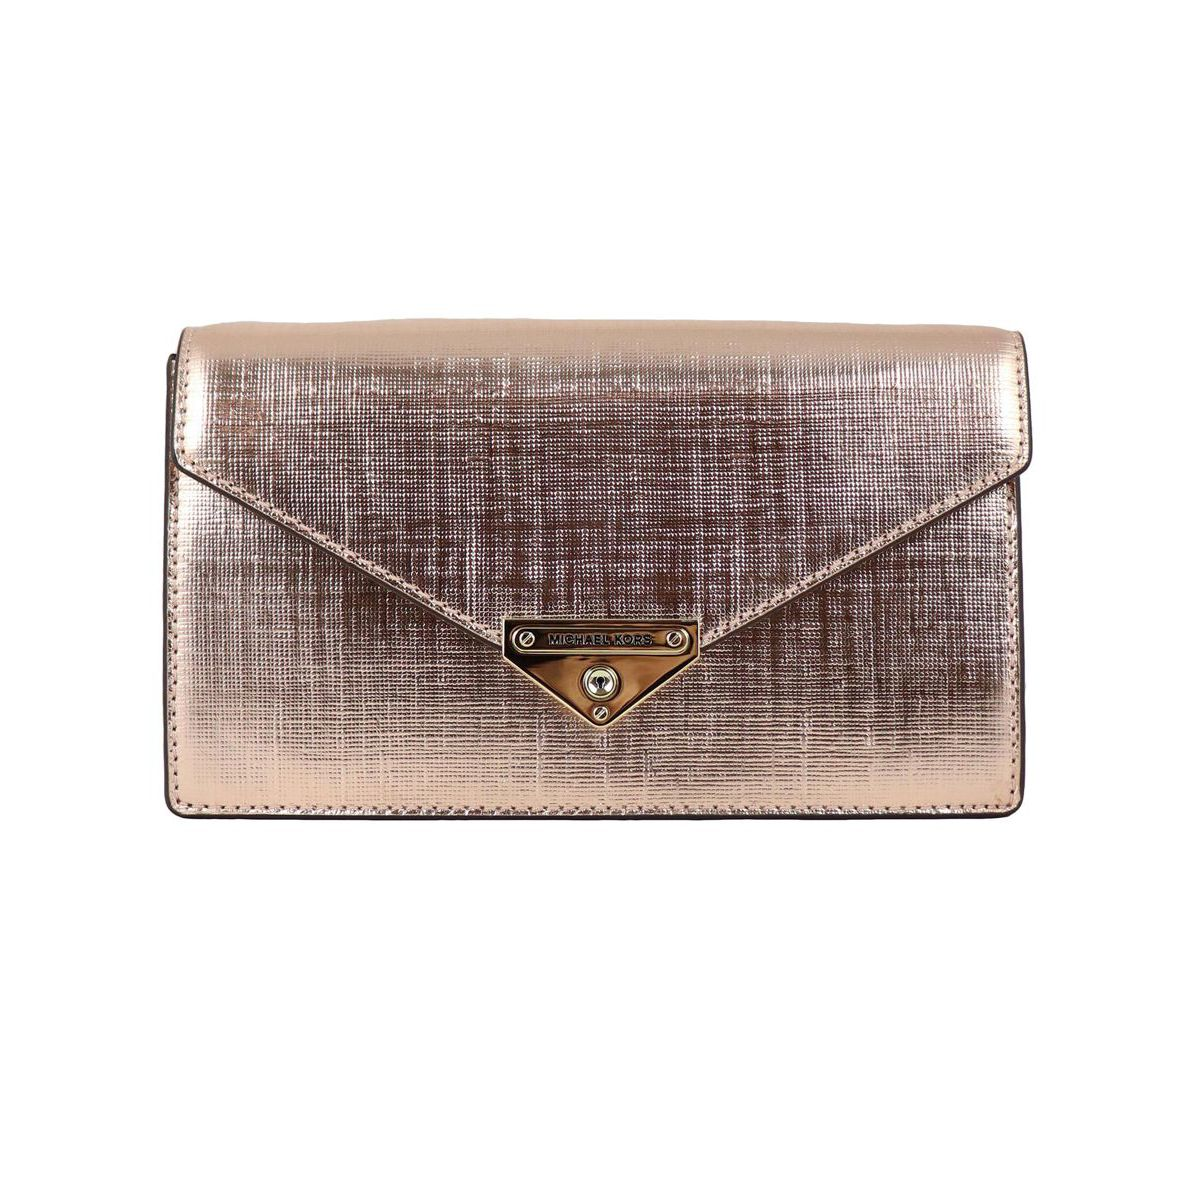 GRACE bag in metallic leather with chain Pink gold Michael Kors